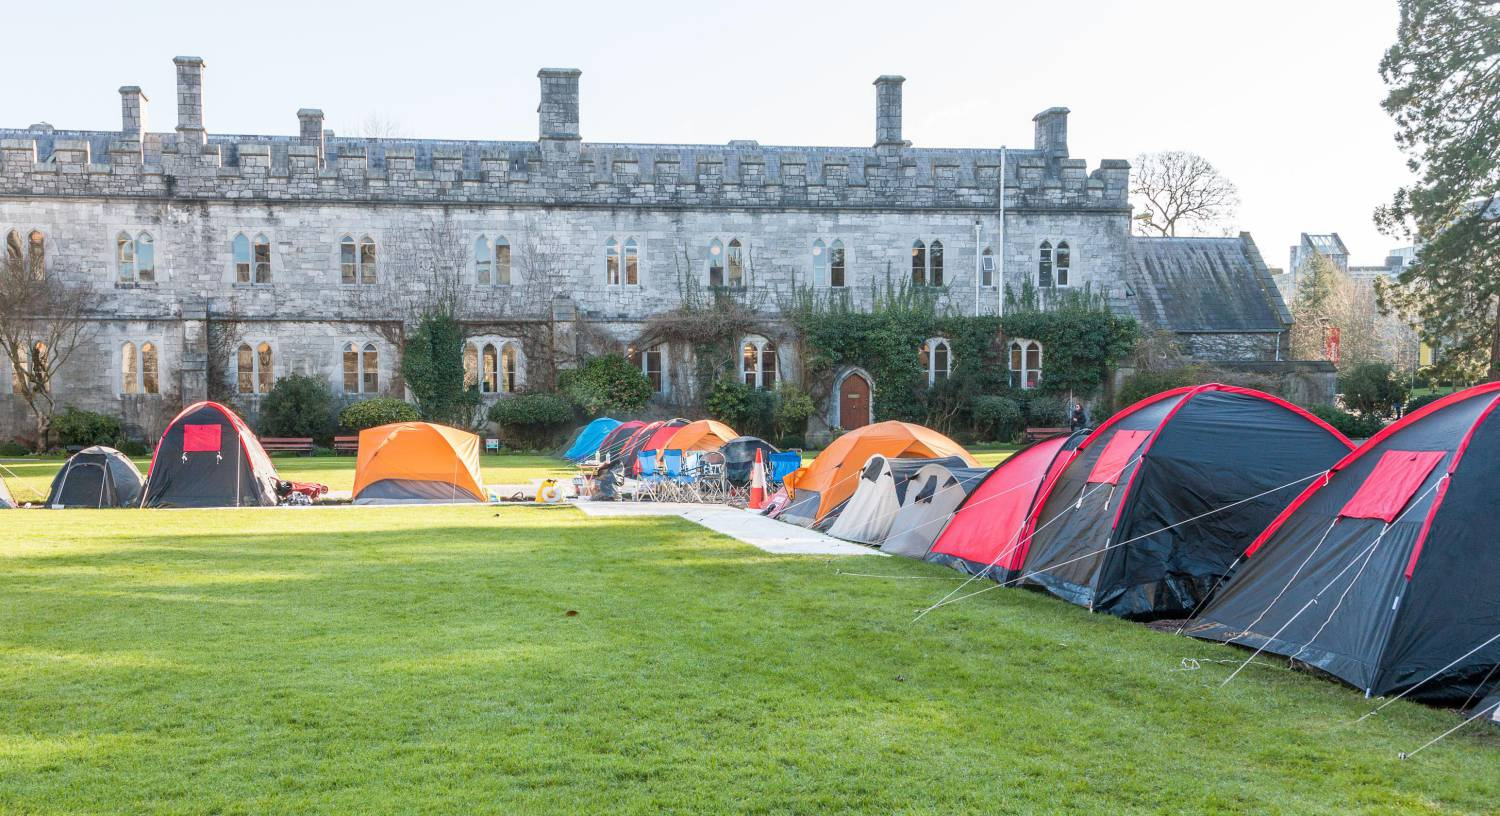 Students from University College Cork erected tents on the College Quad in protest at the Universities decision to increase rents for a third time in recent years.